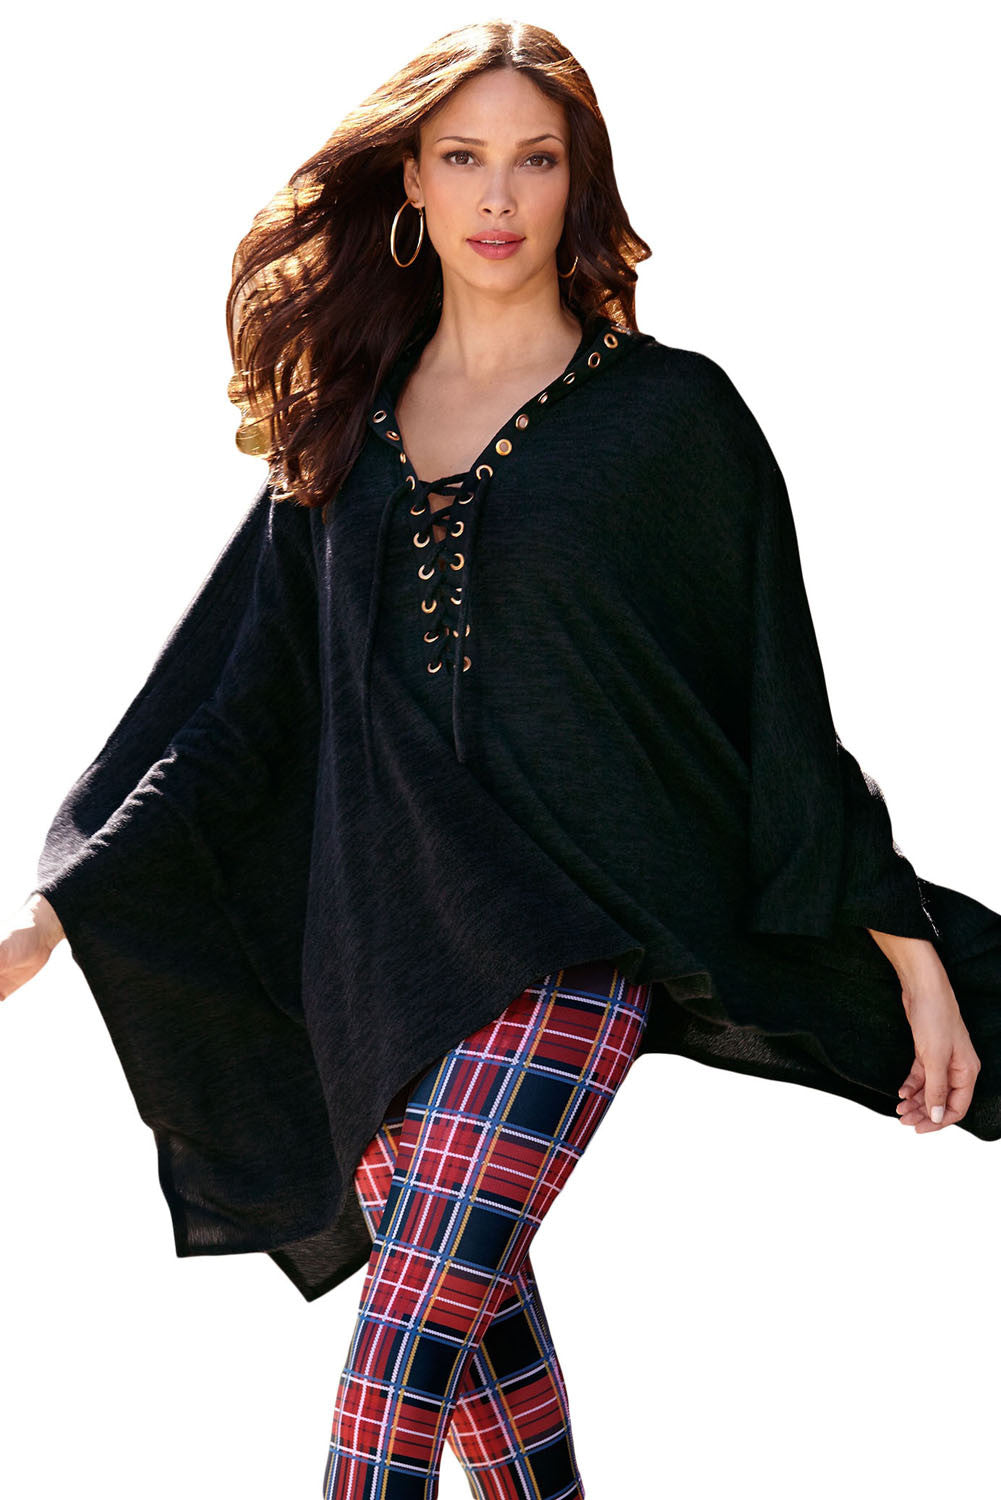 Her Oversize Fashionable Grommet Lace-up Poncho in Black